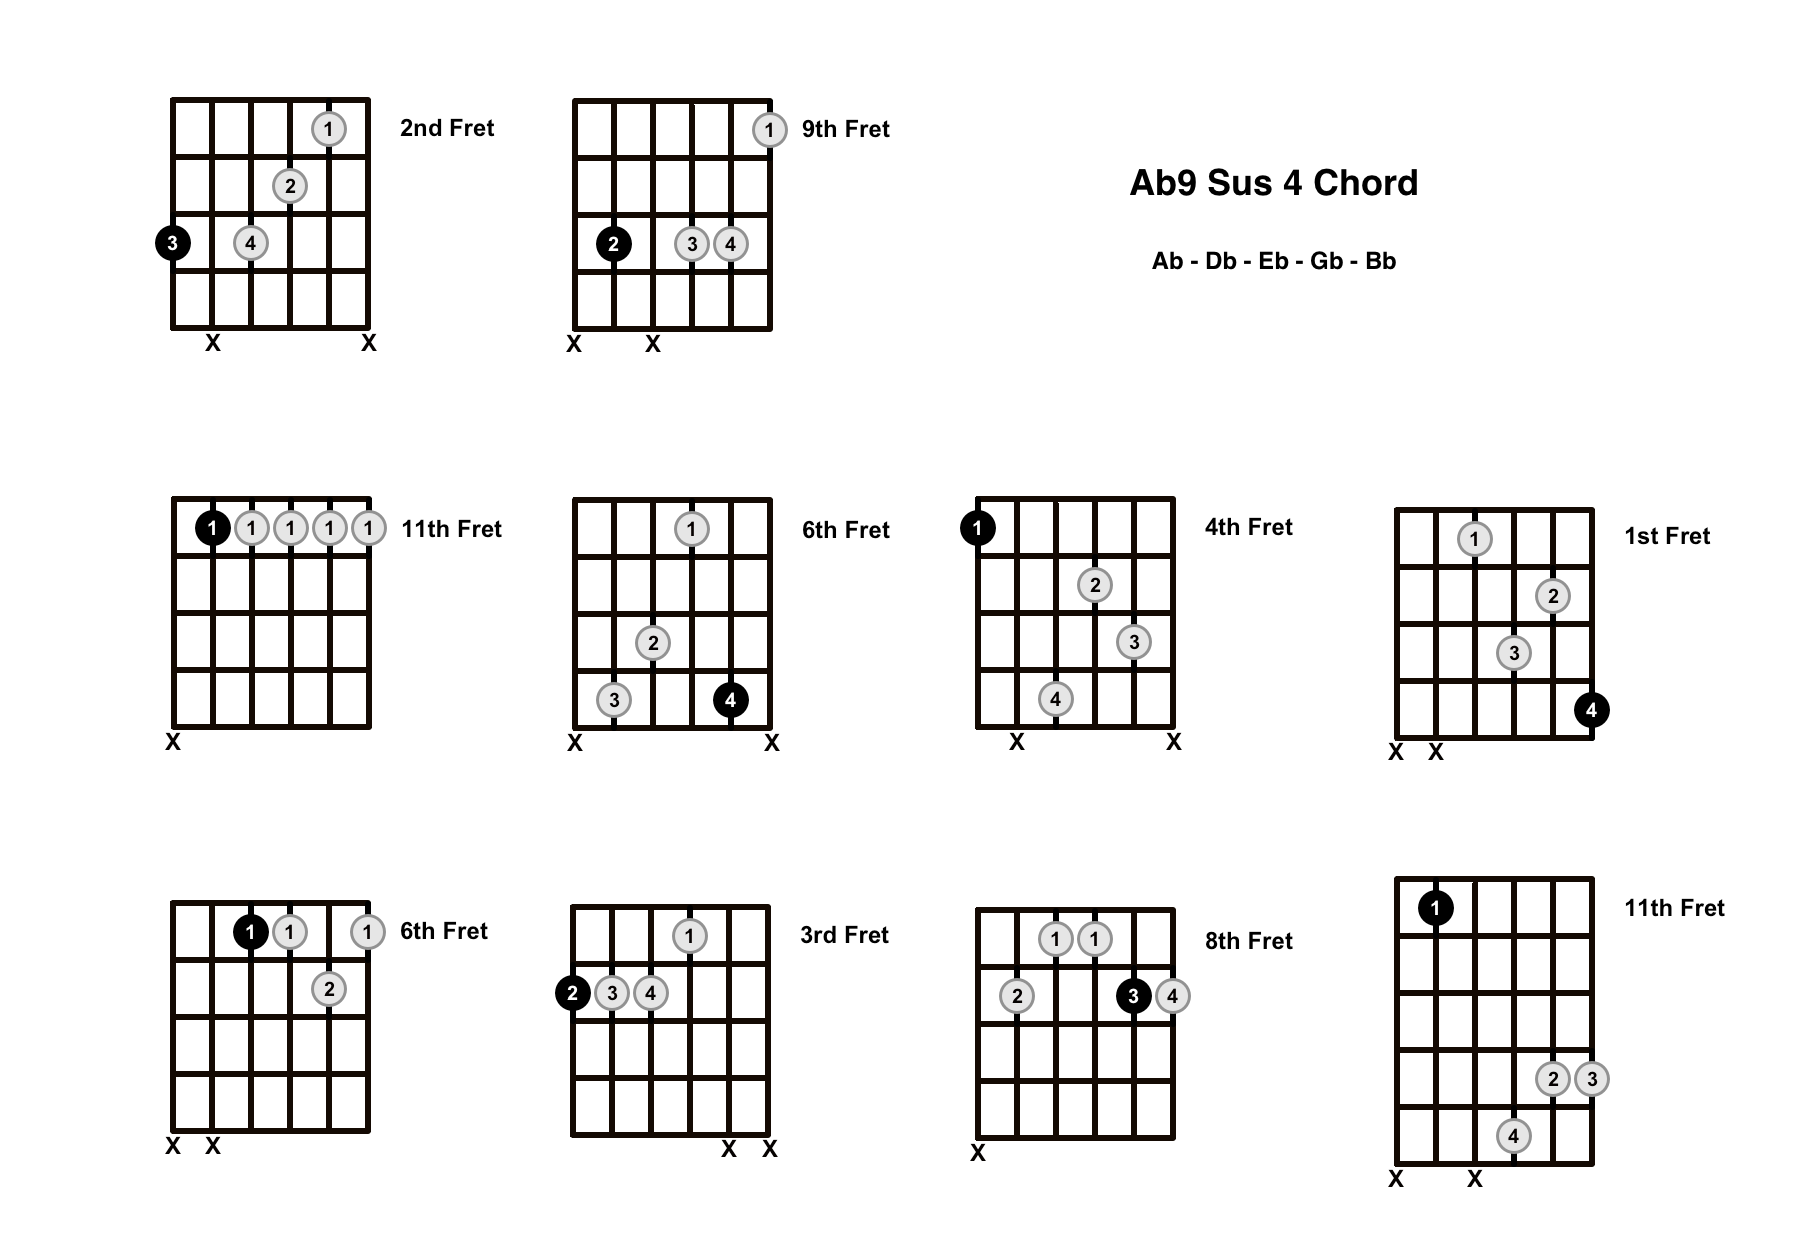 Ab9 Sus 4 Chord On The Guitar (A Flat 9 Suspended 4, Gb/Ab) – Diagrams, Finger Positions and Theory